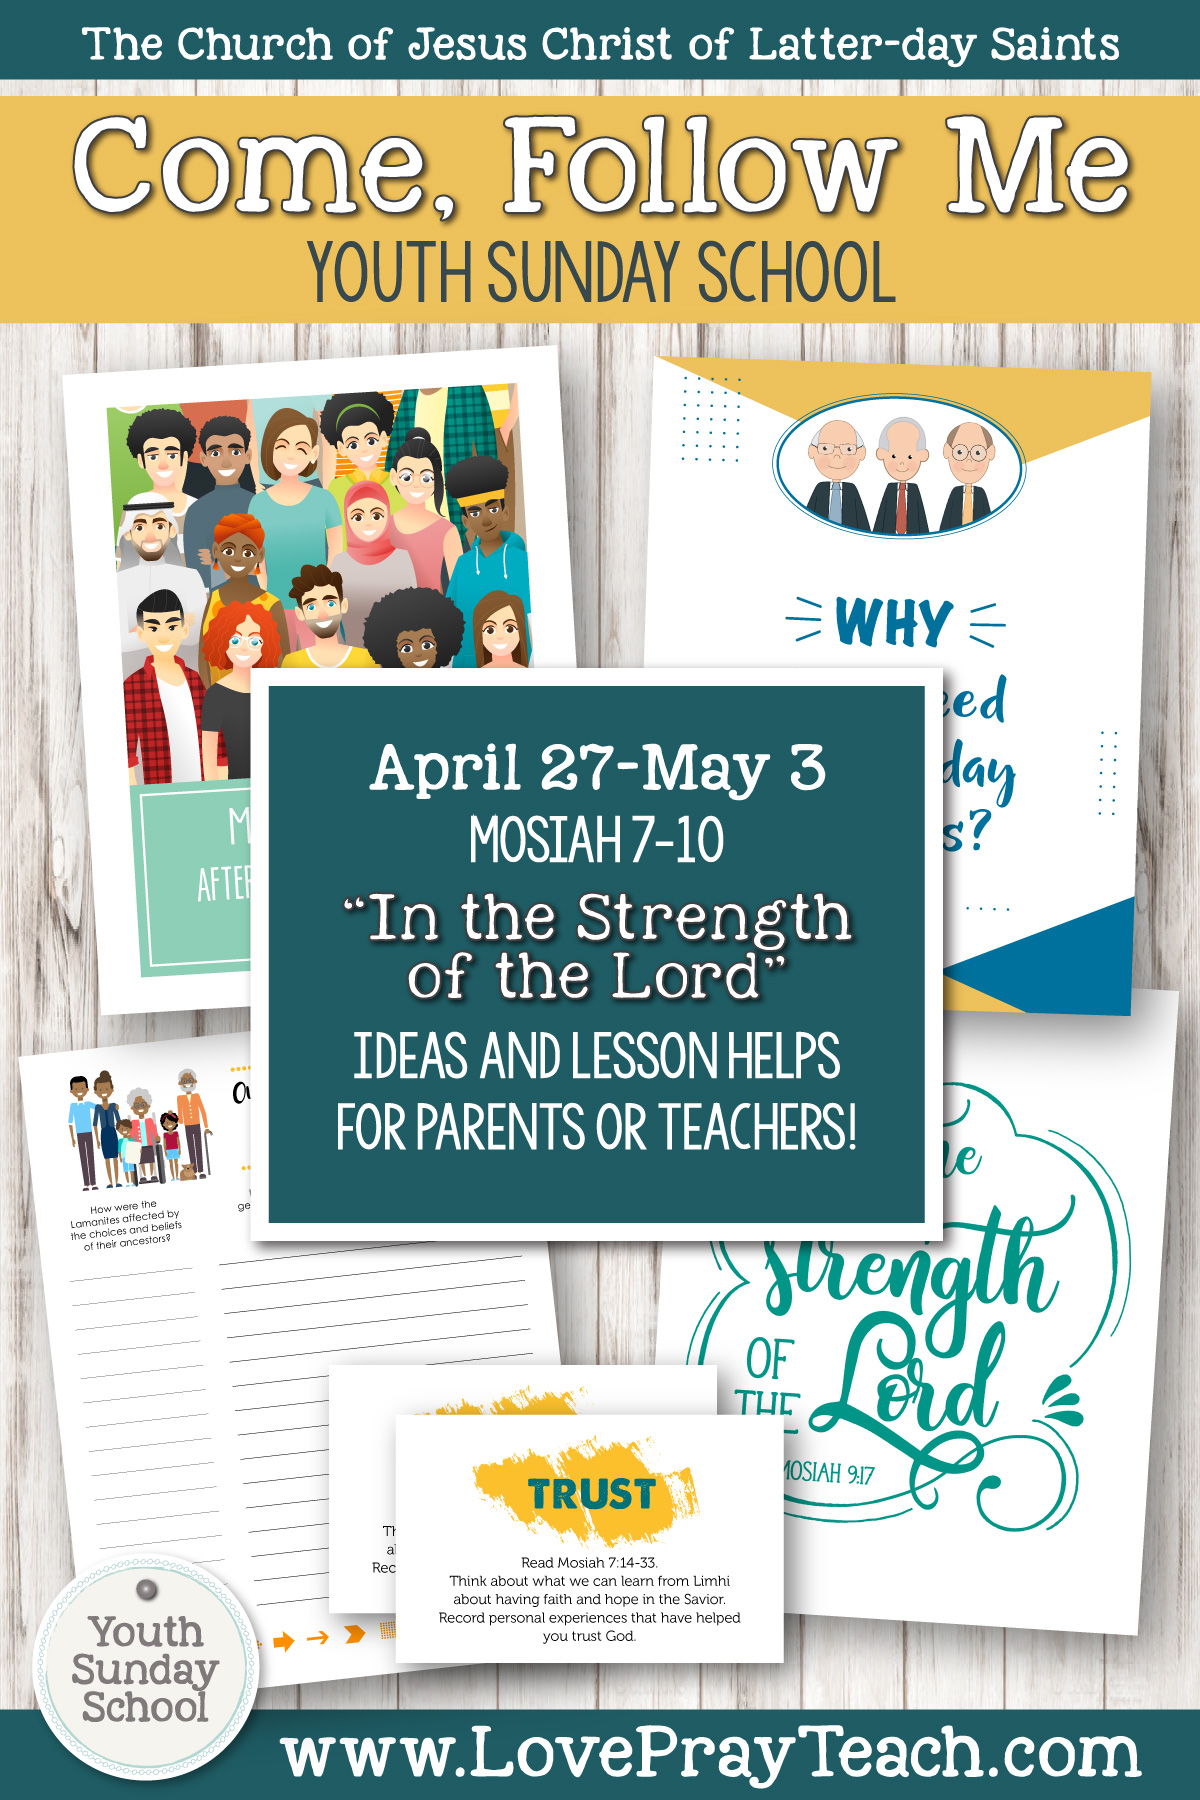 """Youth Sunday School Come, Follow Me Book of Mormon 2020 April 27–May 3 Mosiah 7–10 """"In the Strength of the Lord"""" Printable Lesson Packet for Latter-day Saints for Parents AND Teachers"""